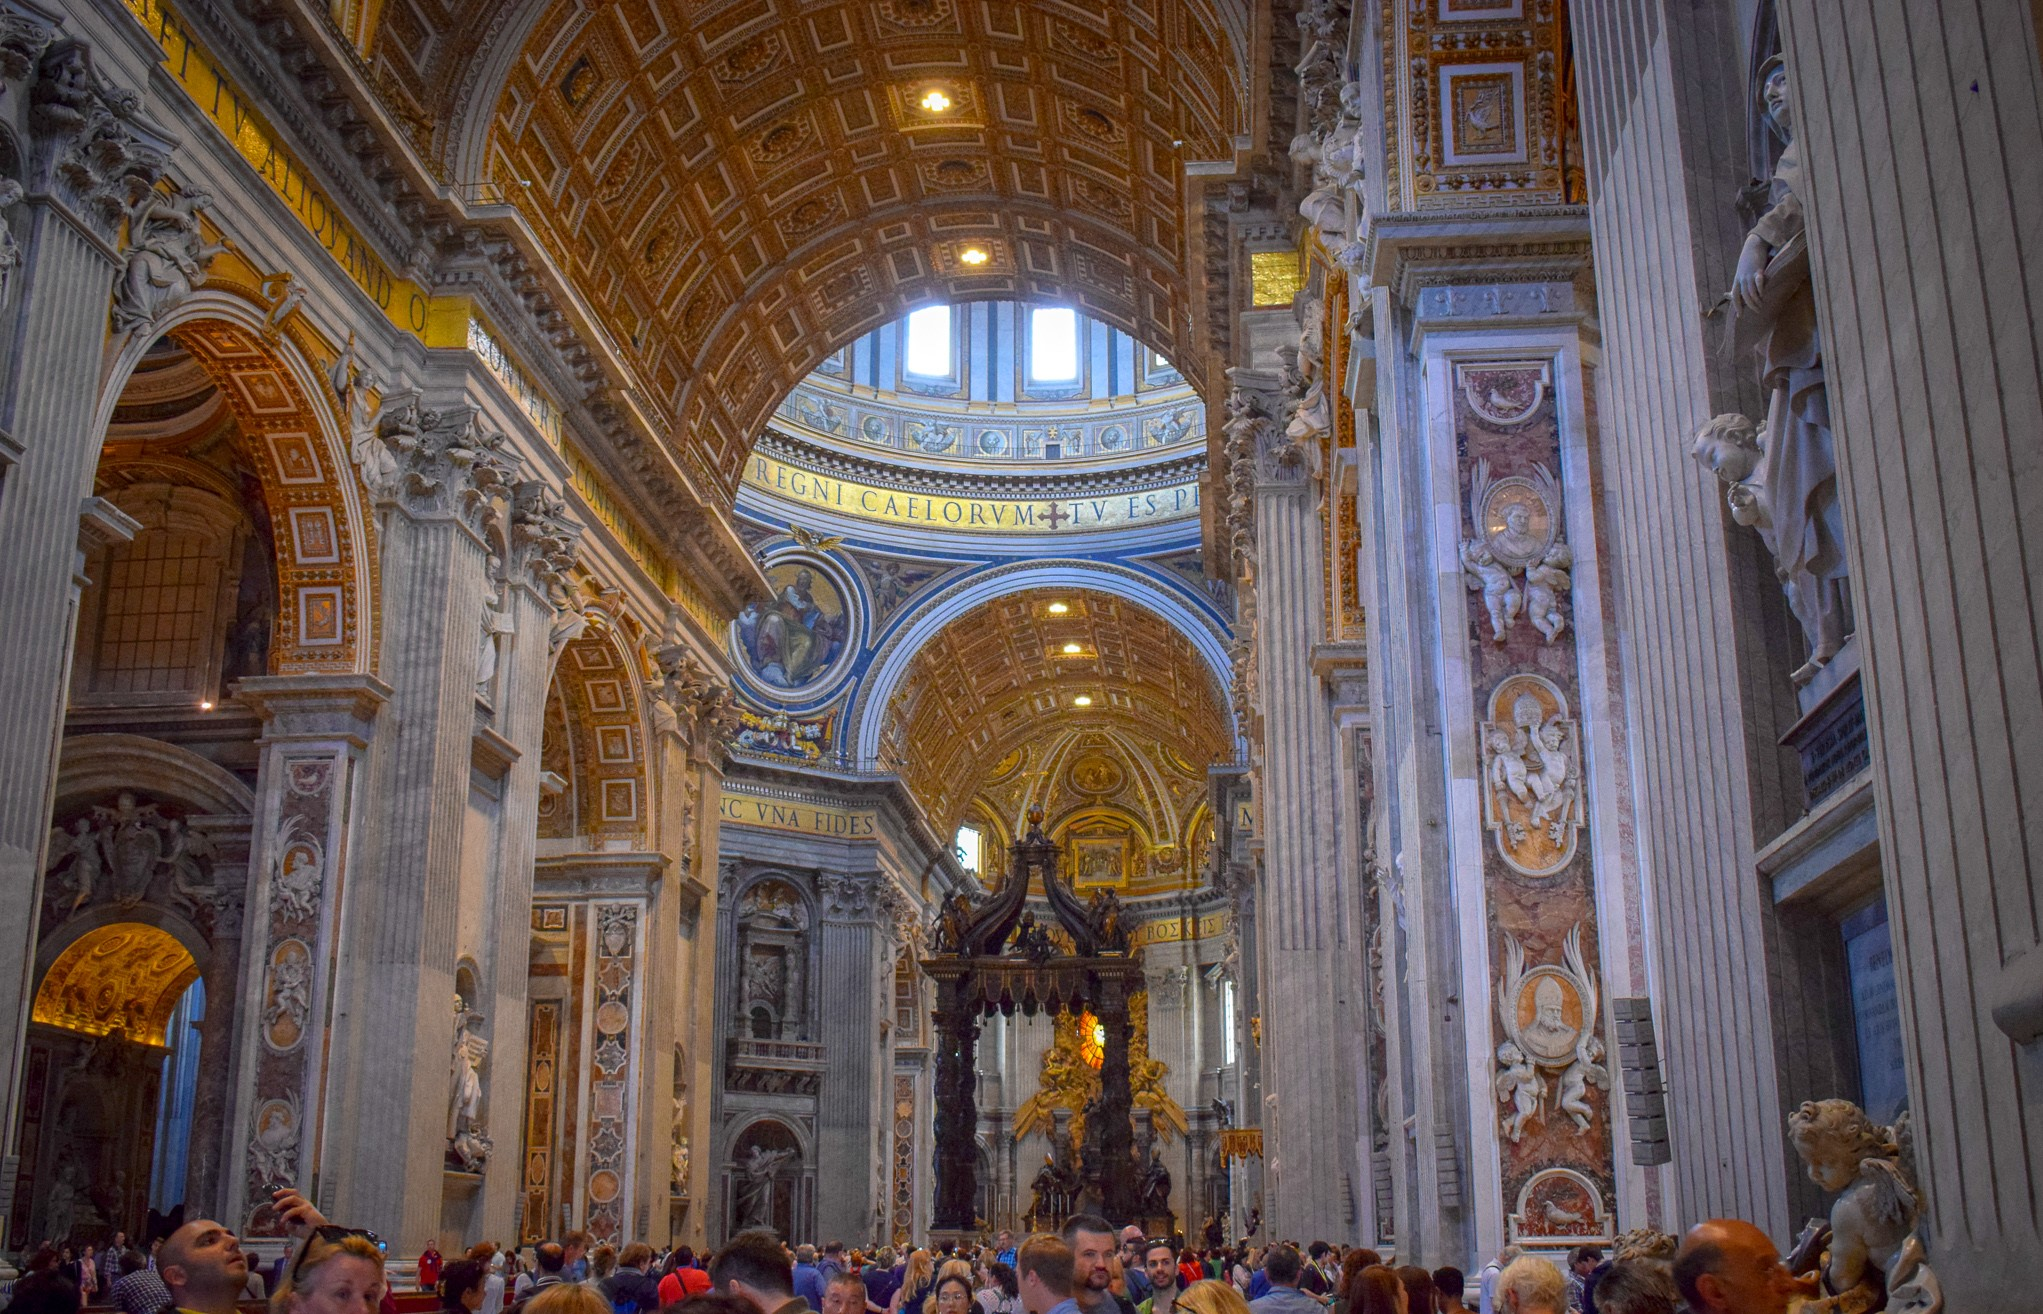 St Peter's Basilica in Vatican City - as busy as it is beautiful.